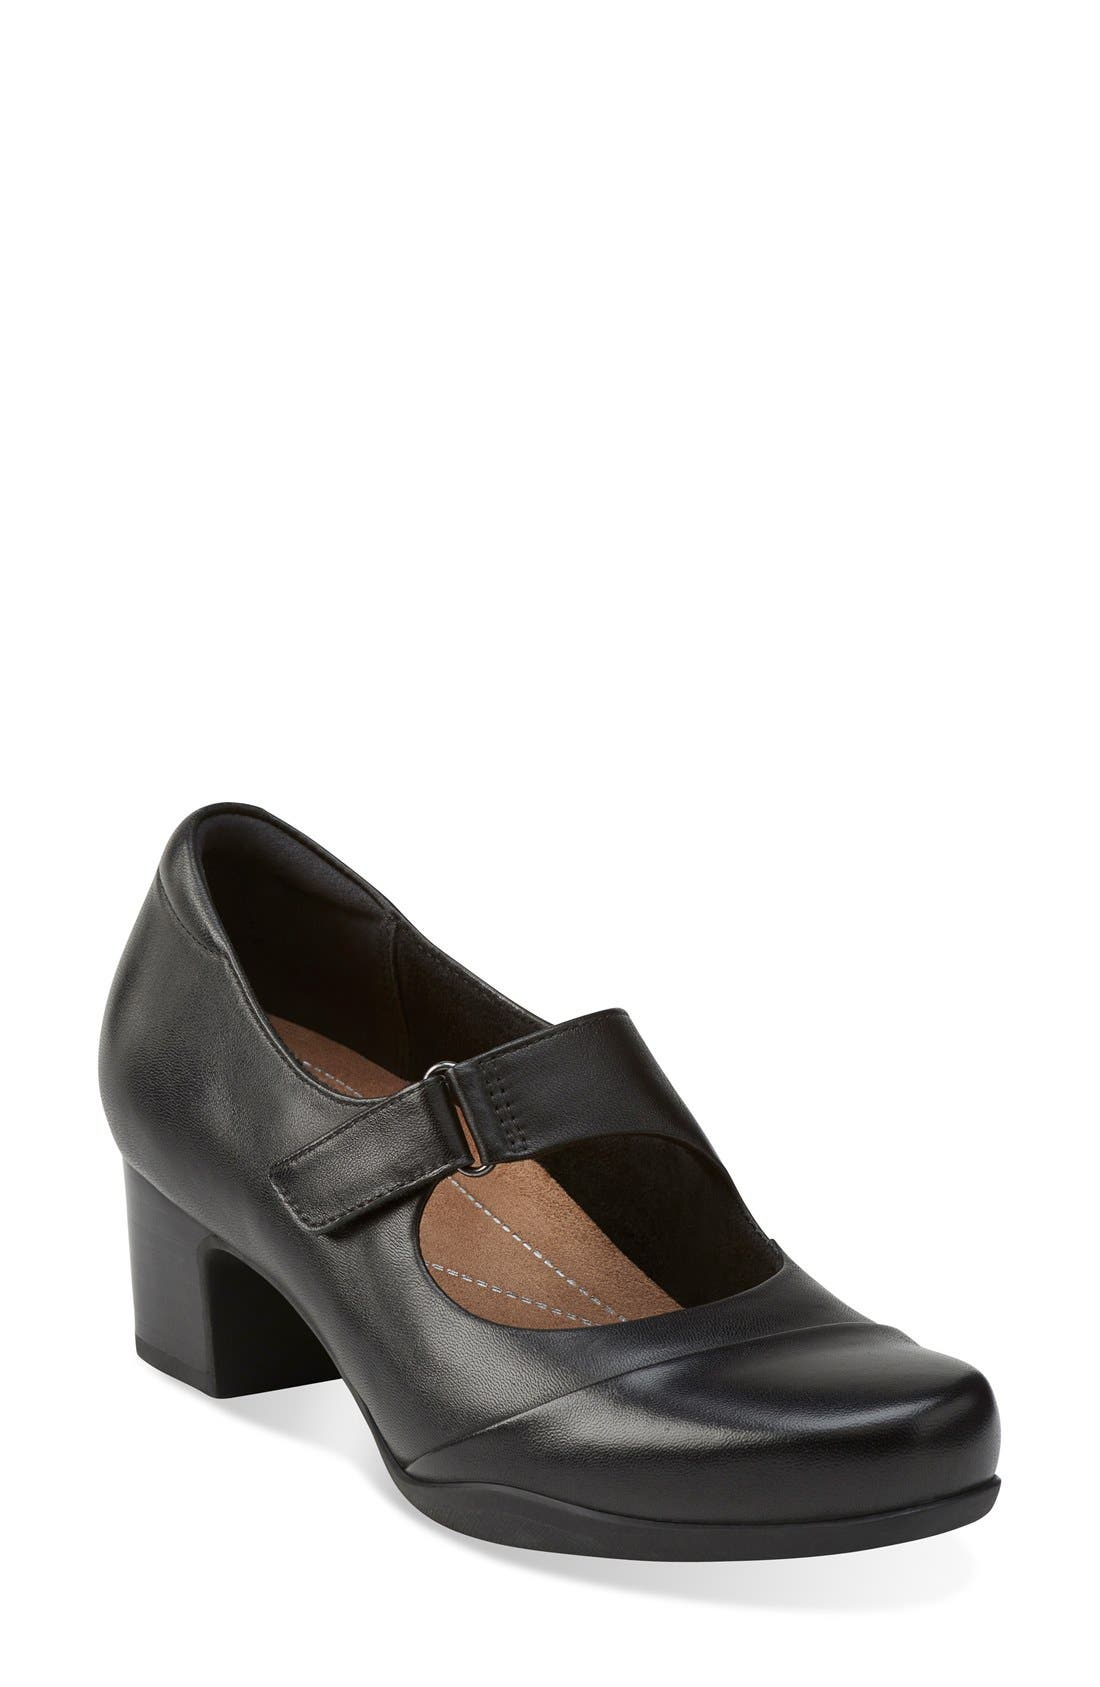 'Rosalyn Wren' Mary Jane Pump,                         Main,                         color, BLACK LEATHER